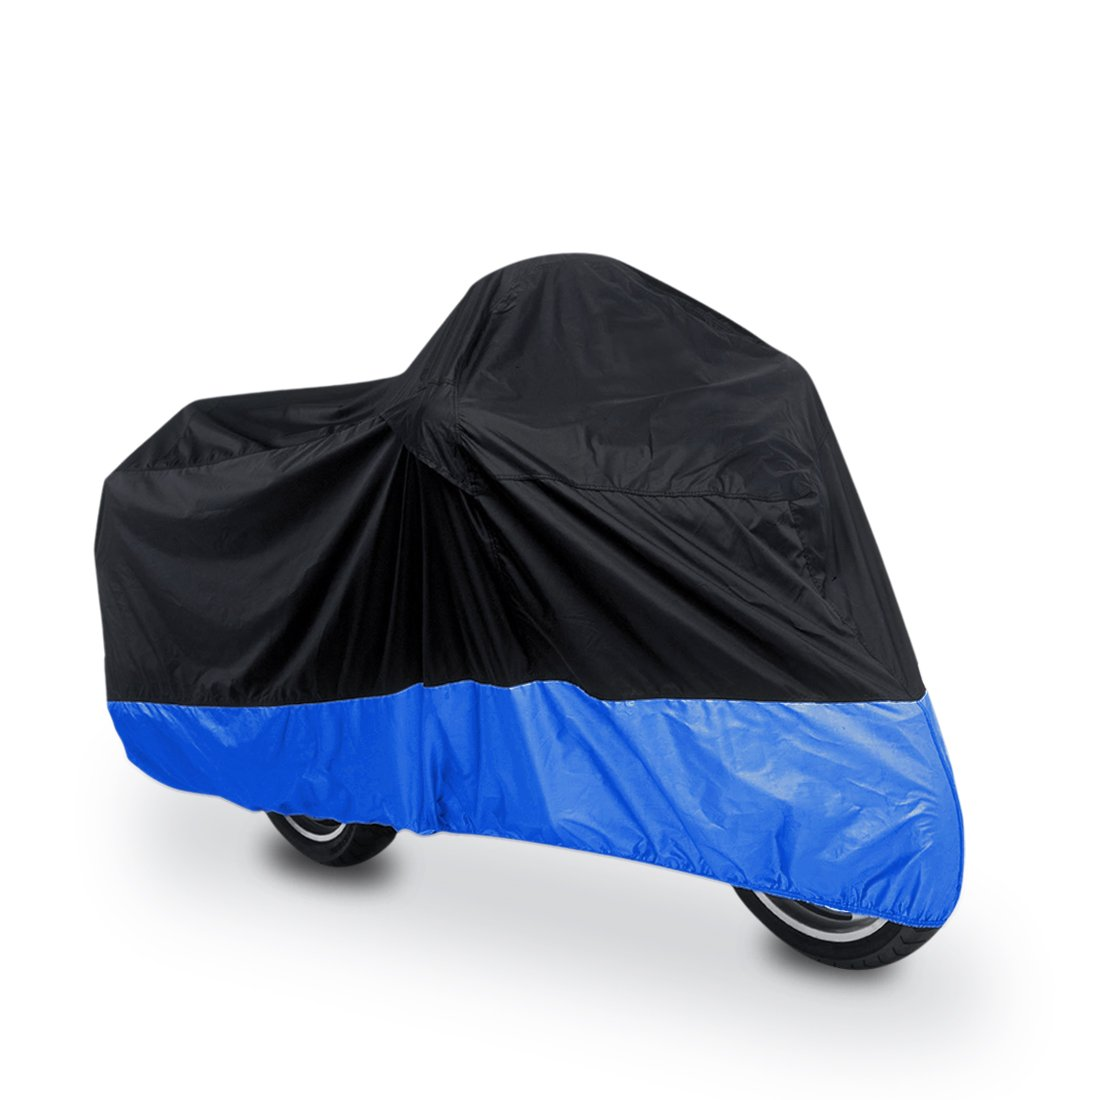 uxcell L 180T Rain Dust Protector Black+Blue Scooter Motorcycle Cover 86'' Fit to Honda Victory Kawasaki Yamaha Suzuki Harley Davidson